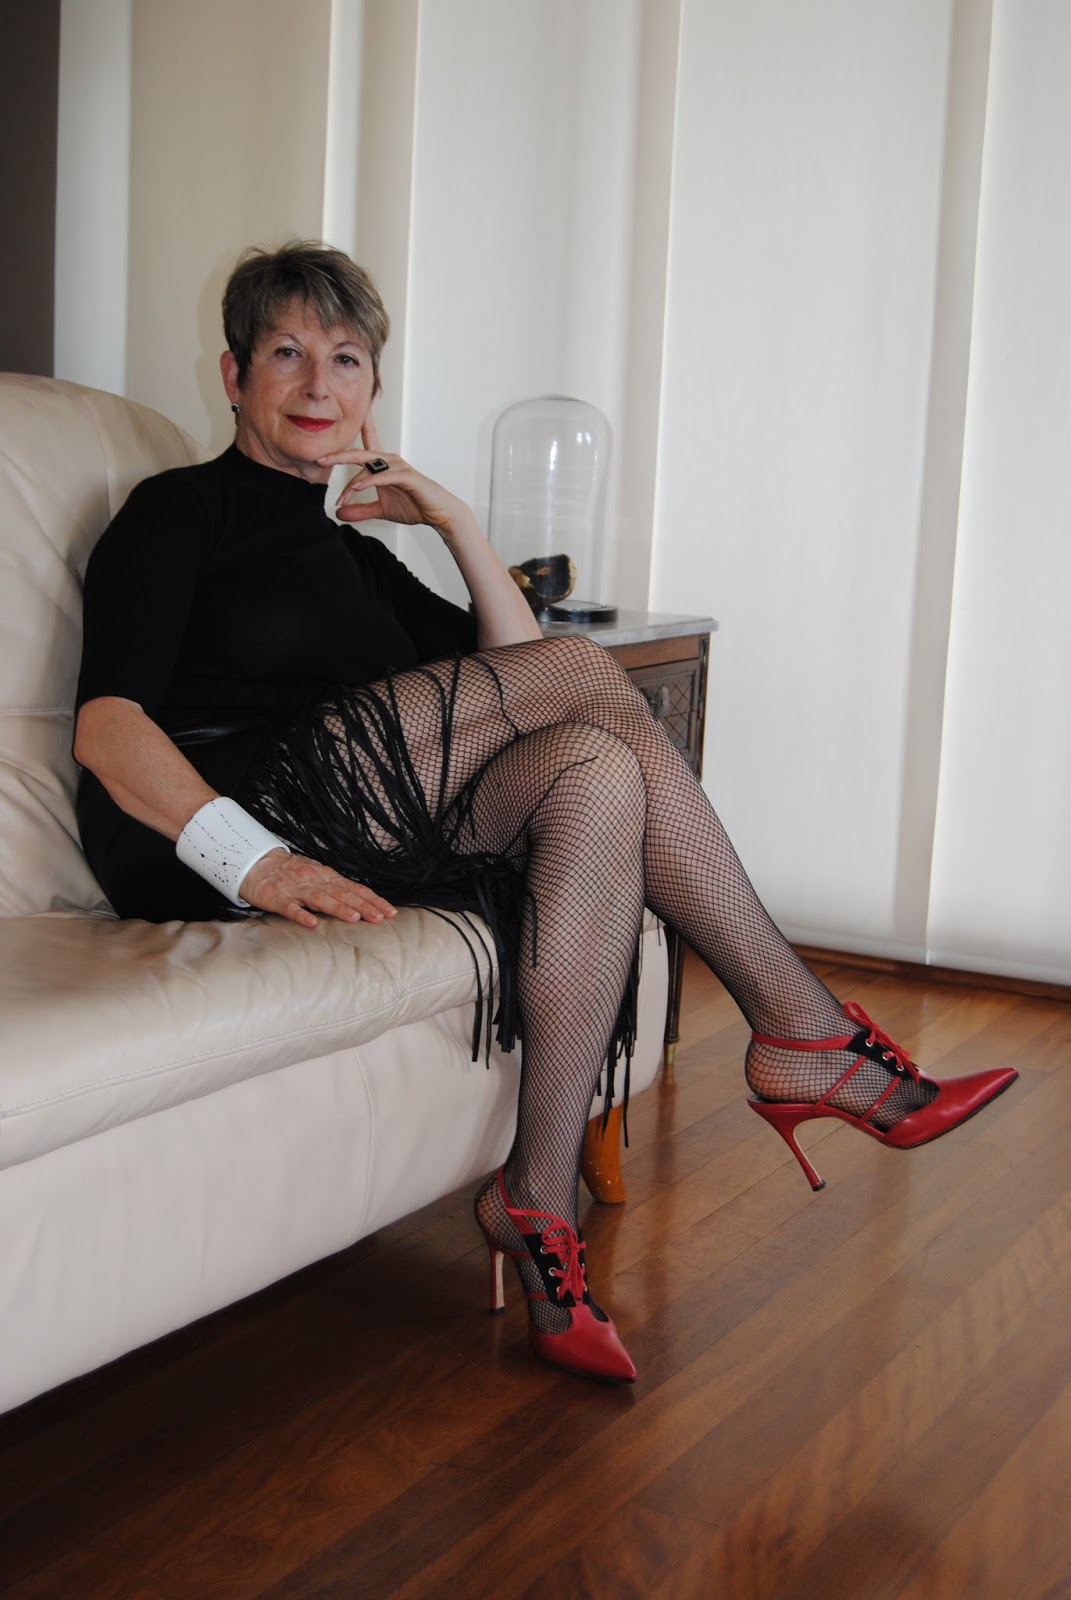 leather skirt stockings Mature